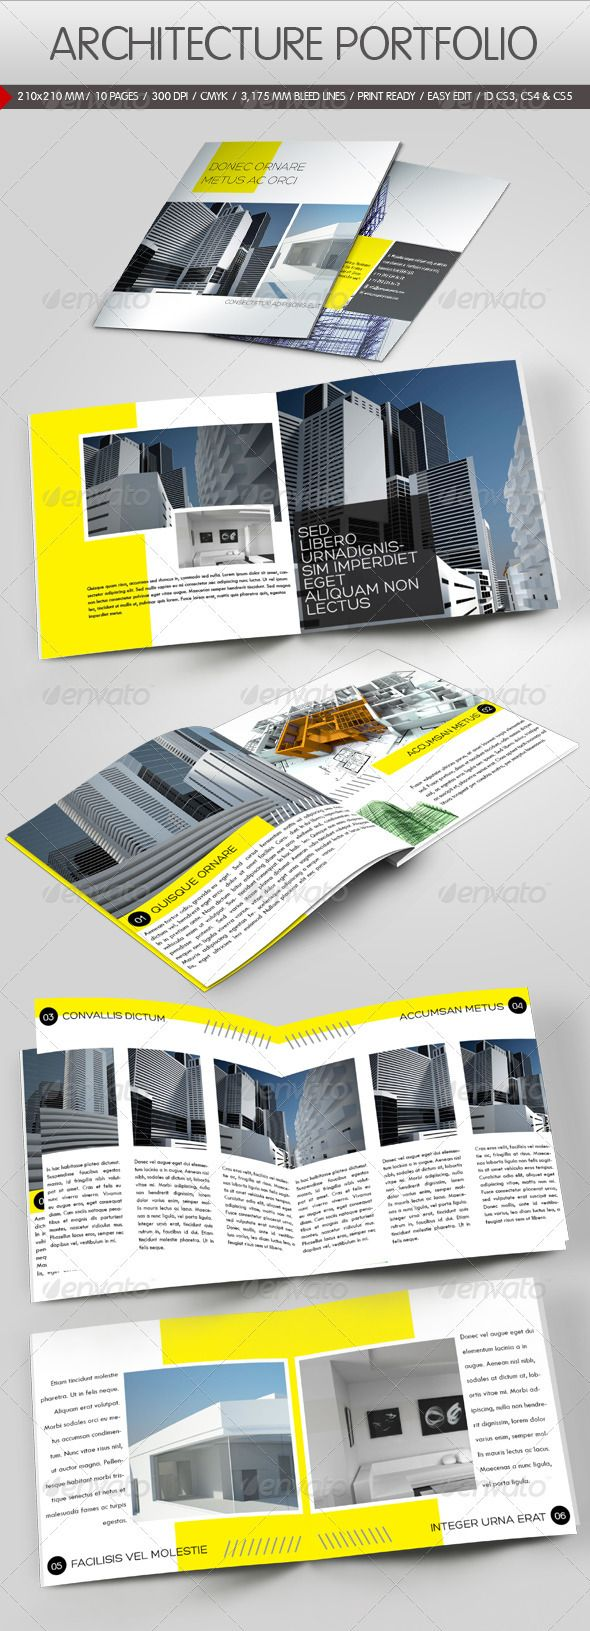 construction brochure template - construction company brochure modern minimal brochure